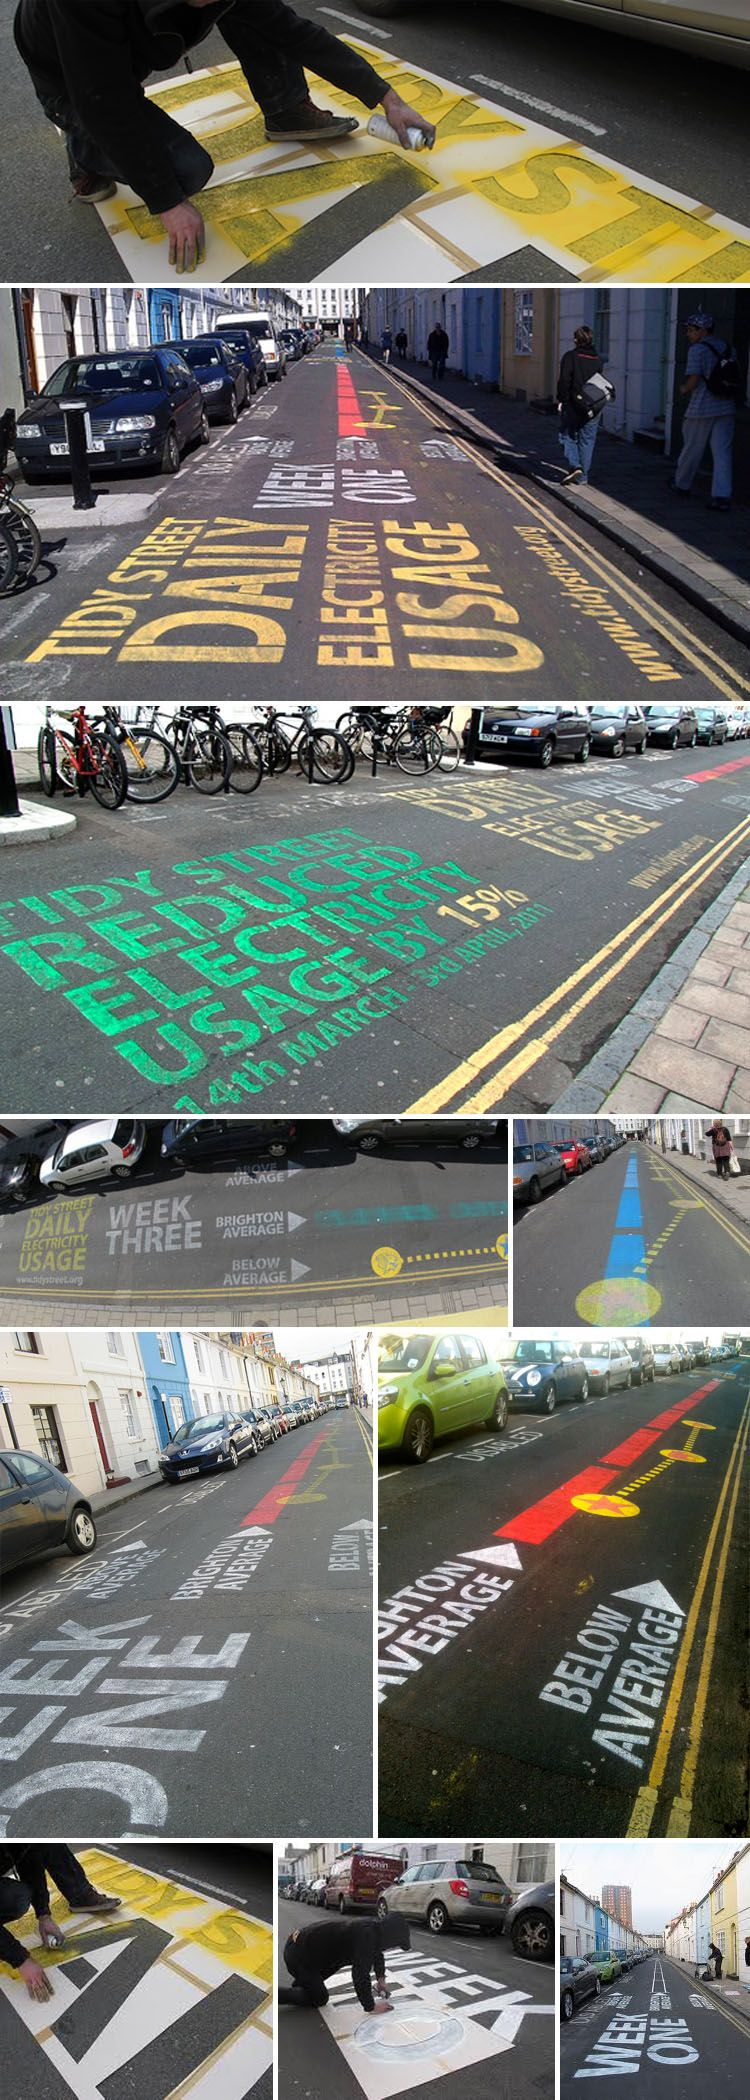 """The Tidy Street Project"" is part of CHANGE, a research collaboration between The Open University, Goldsmiths, Sussex University and Nottingham University."